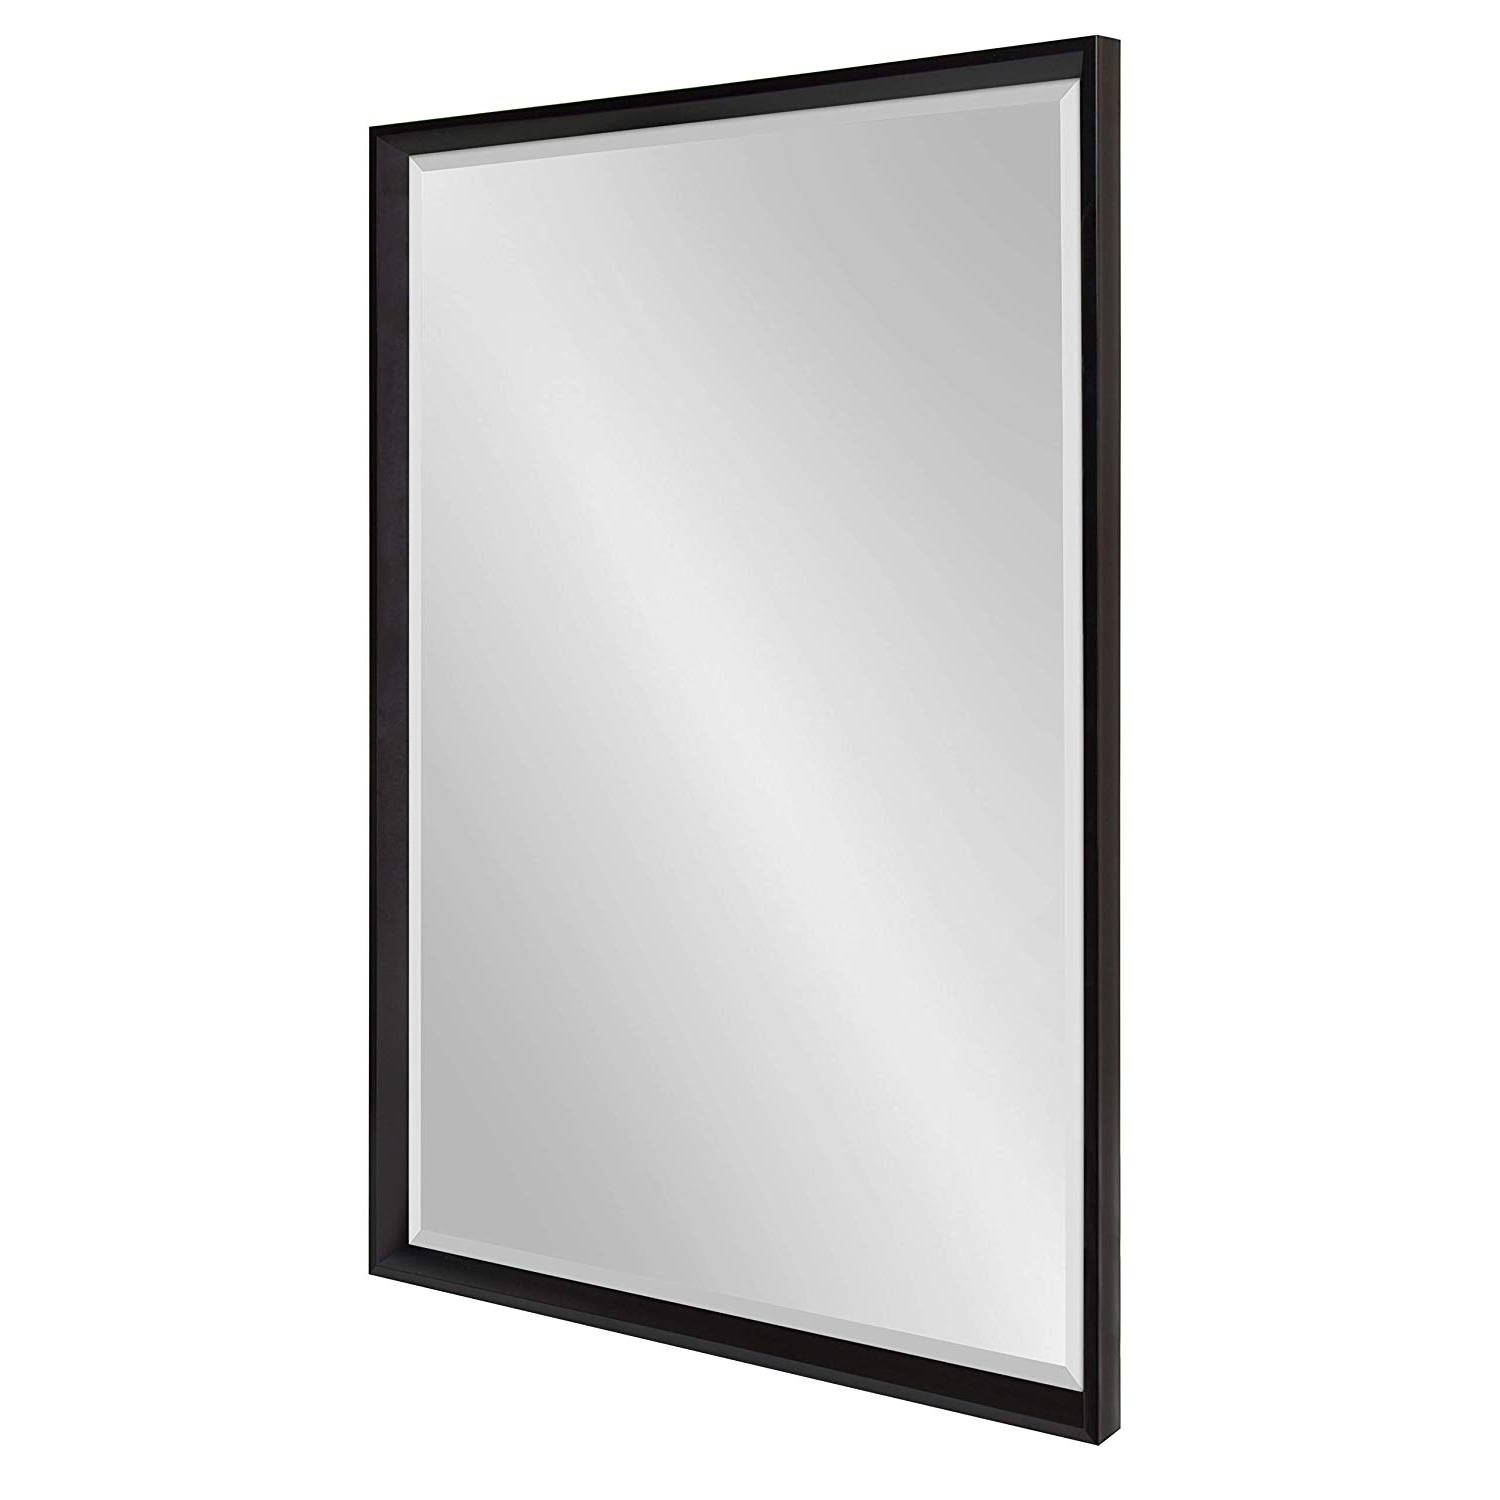 Widely Used Black Rectangle Wall Mirrors For Kate And Laurel Calter Framed Wall Mirror, 25.5x (View 2 of 20)